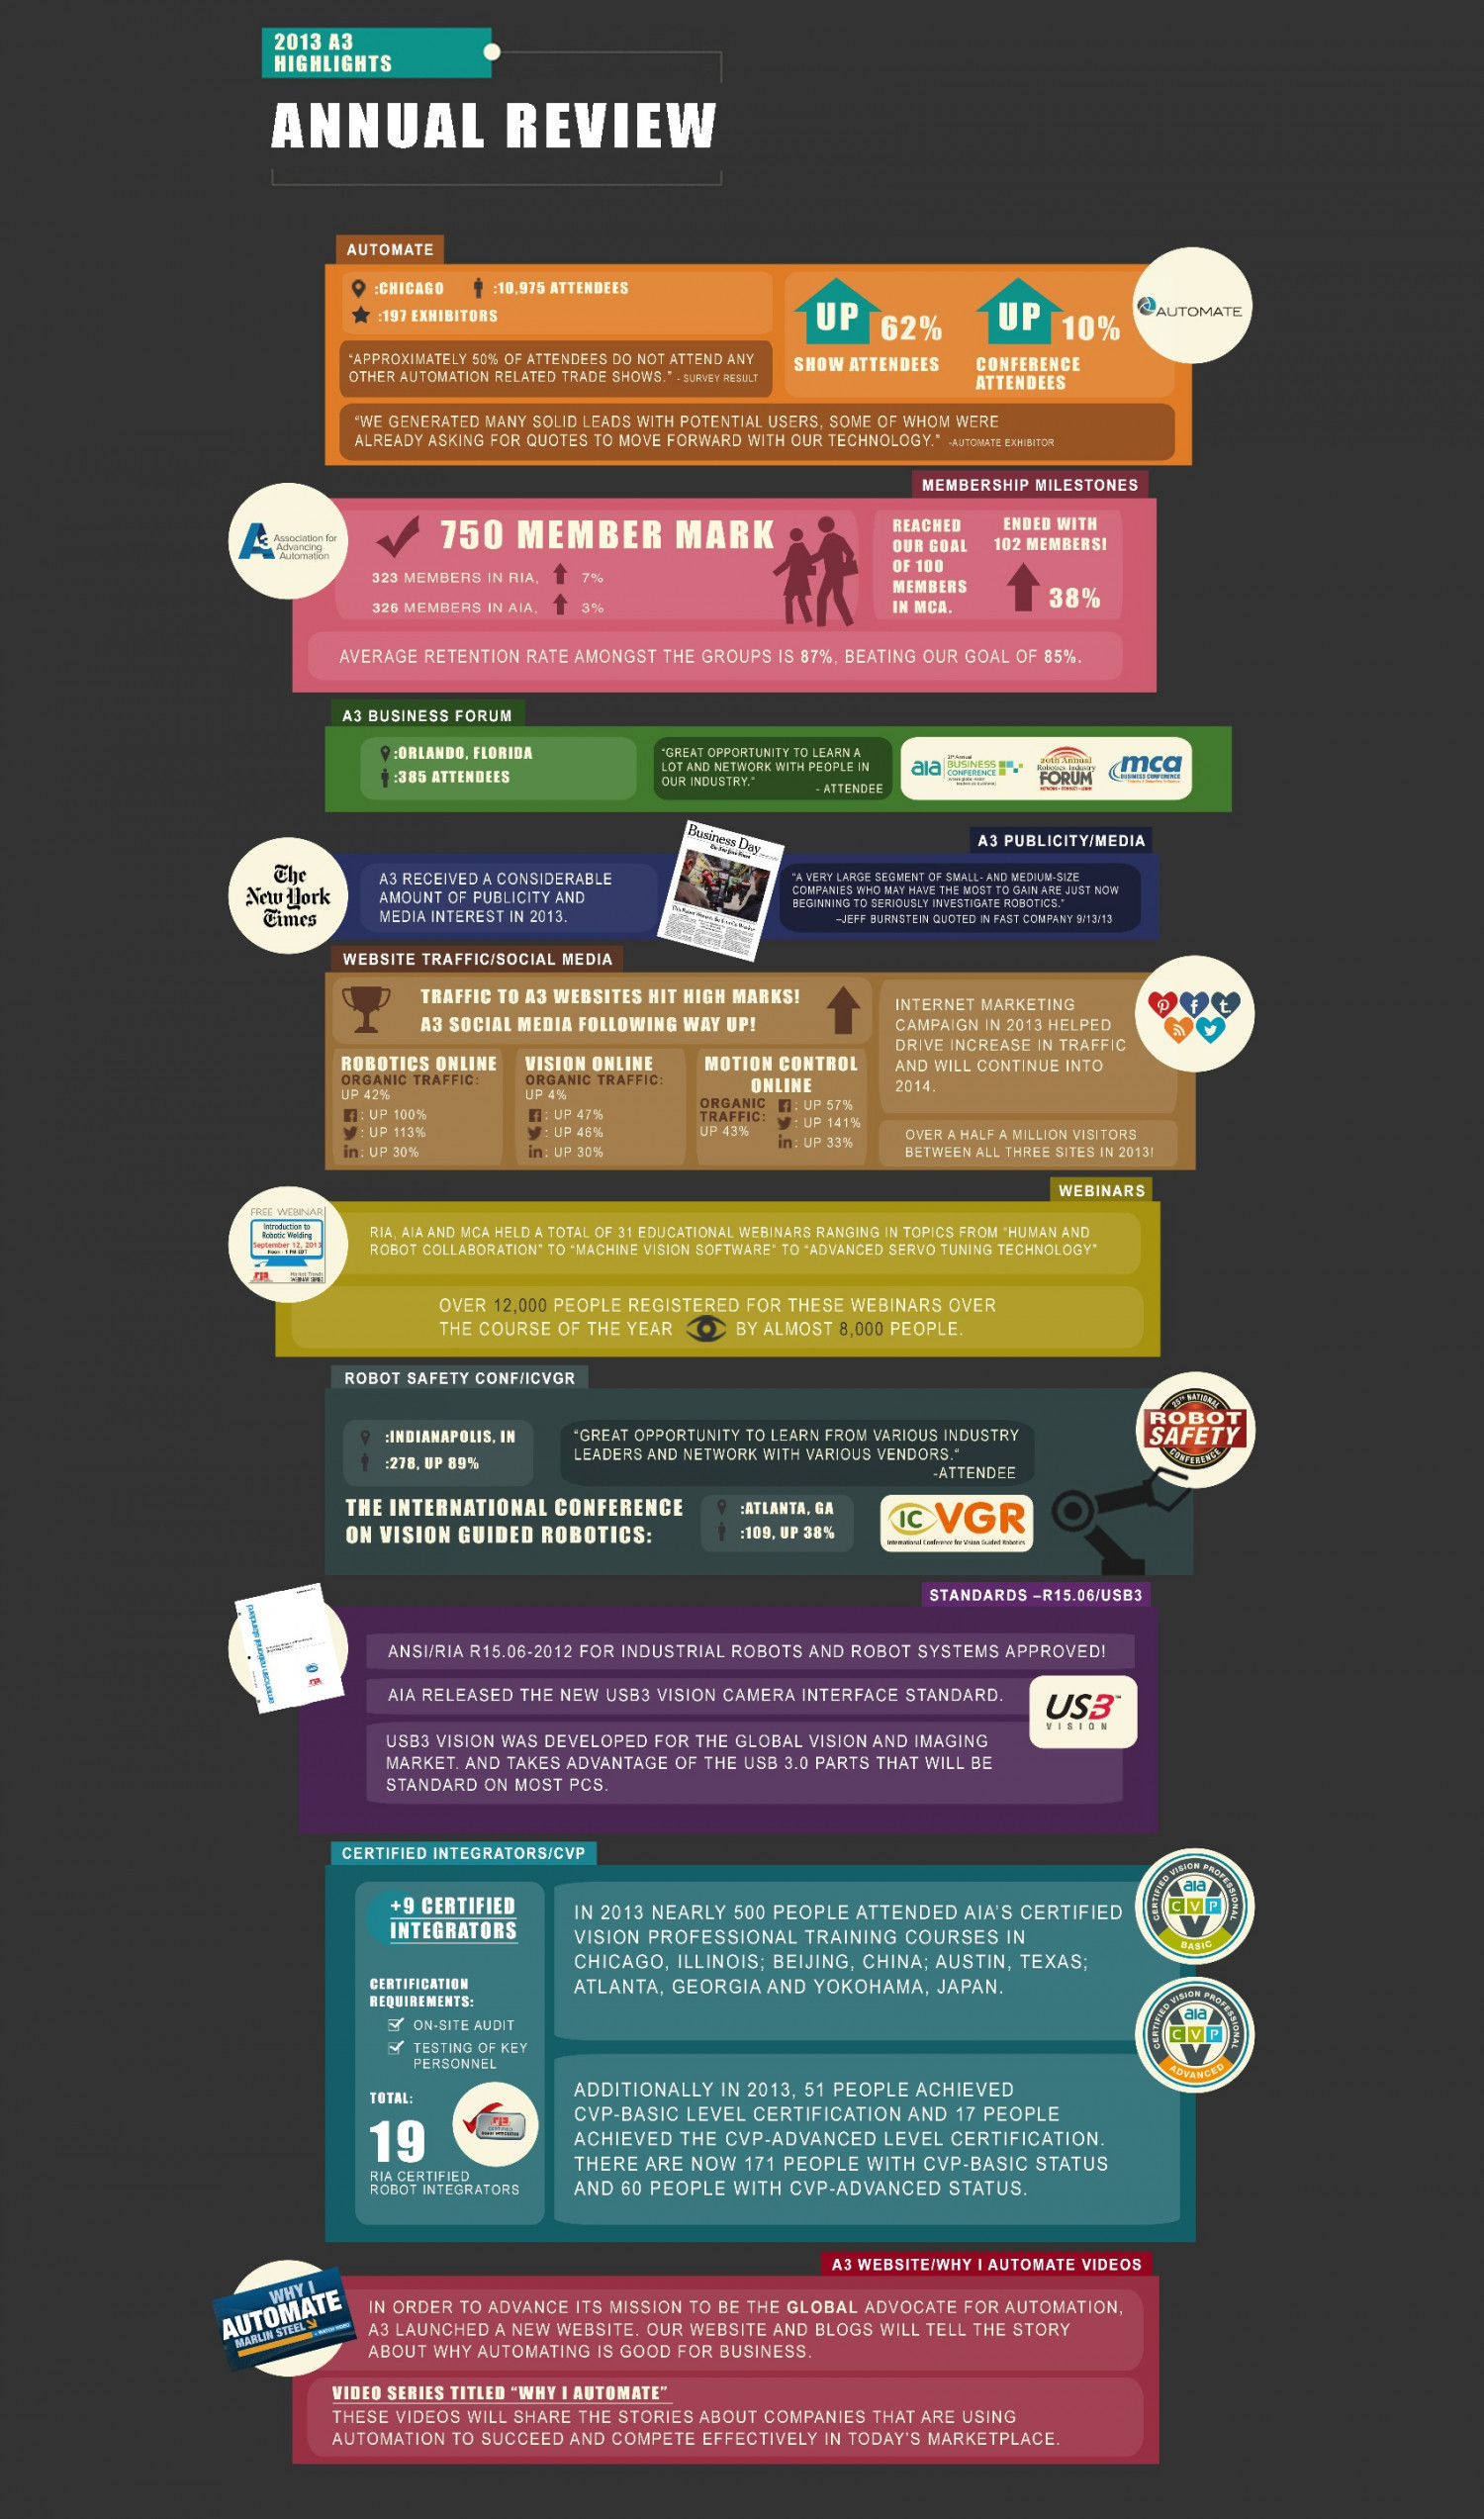 2013 A3 Annual Review  Infographic